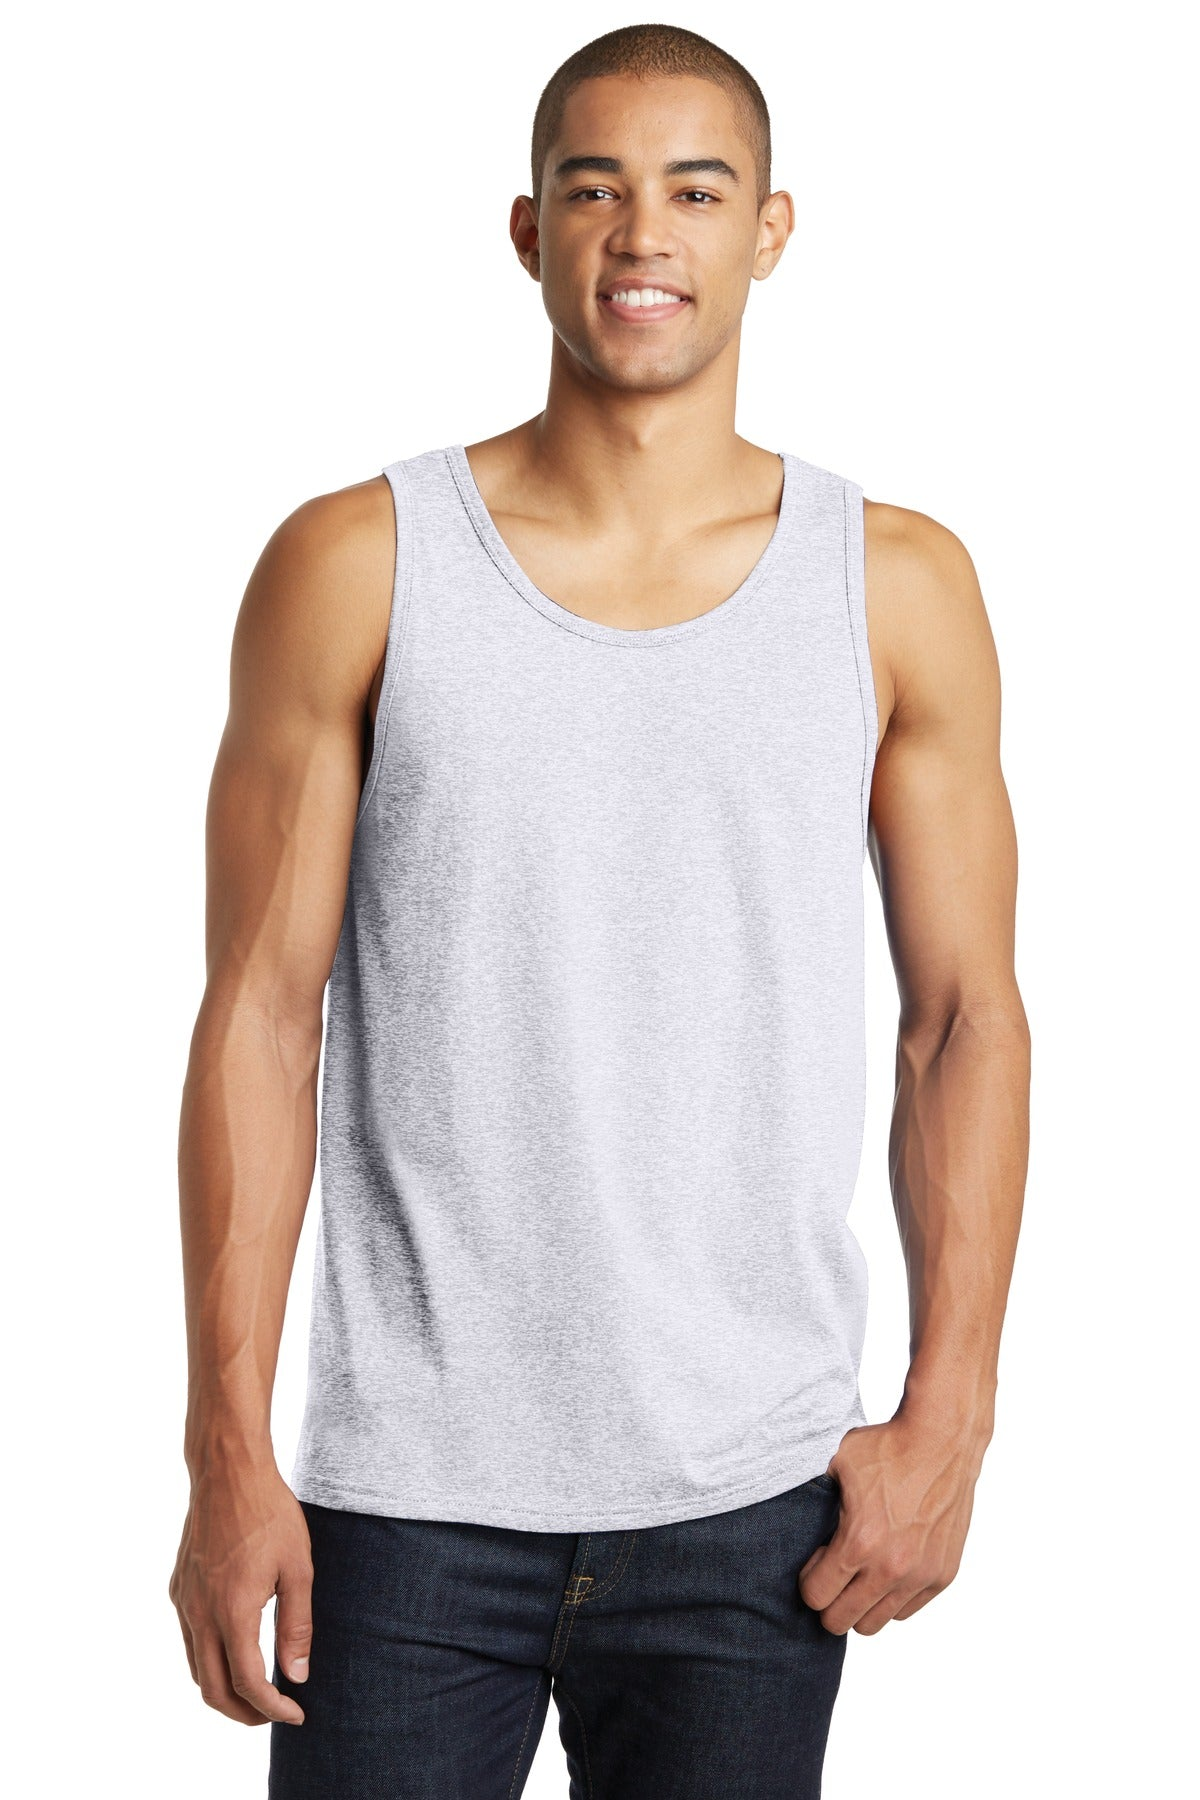 District DT5300 The Concert Tank - White Heather - HIT A Double